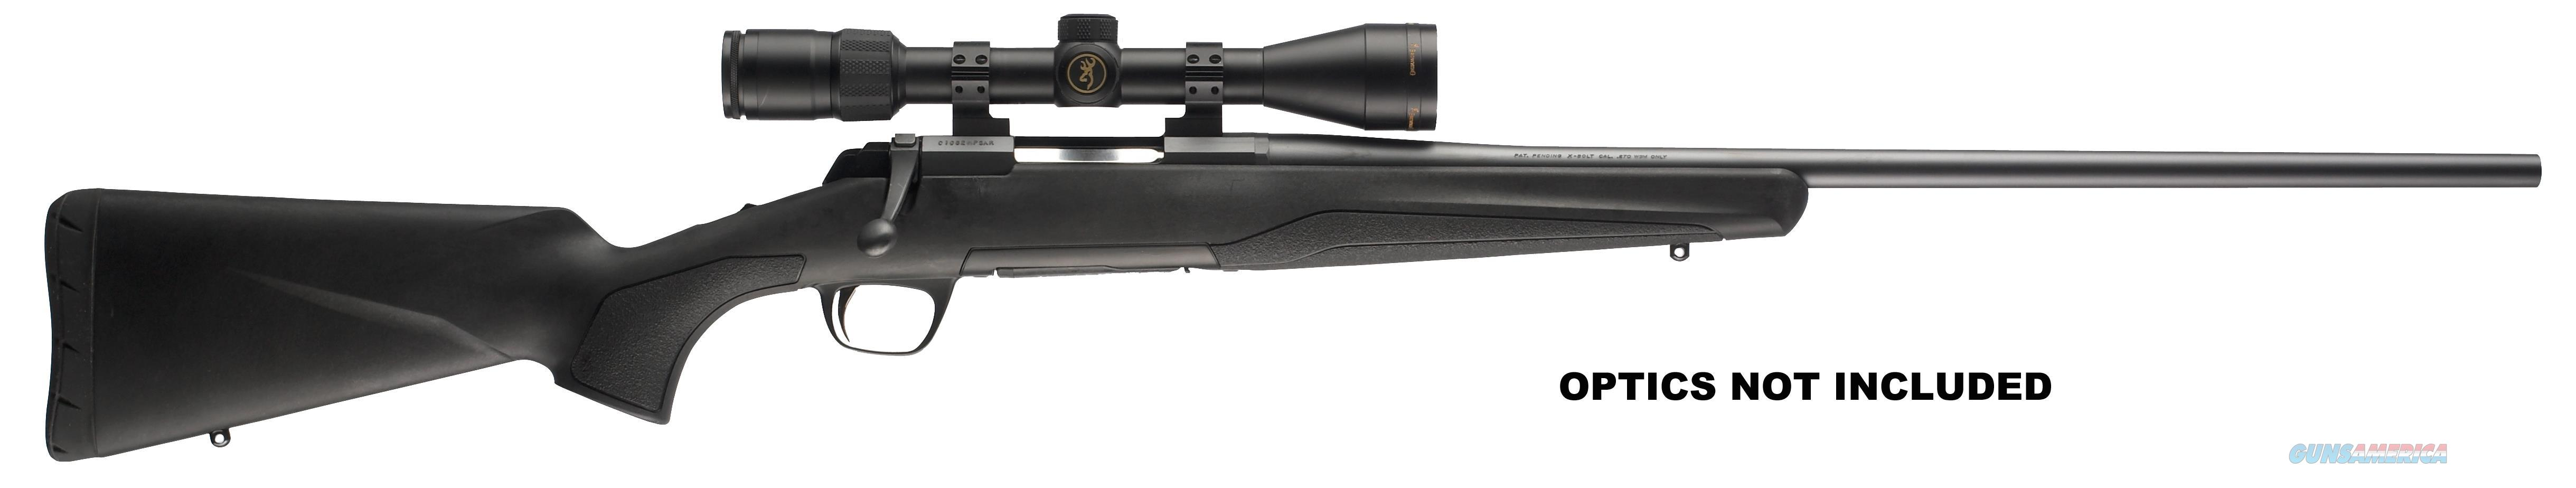 BROWNING XBOLT STALKER COMP 280REM NS 035201225  Guns > Rifles > Browning Rifles > Bolt Action